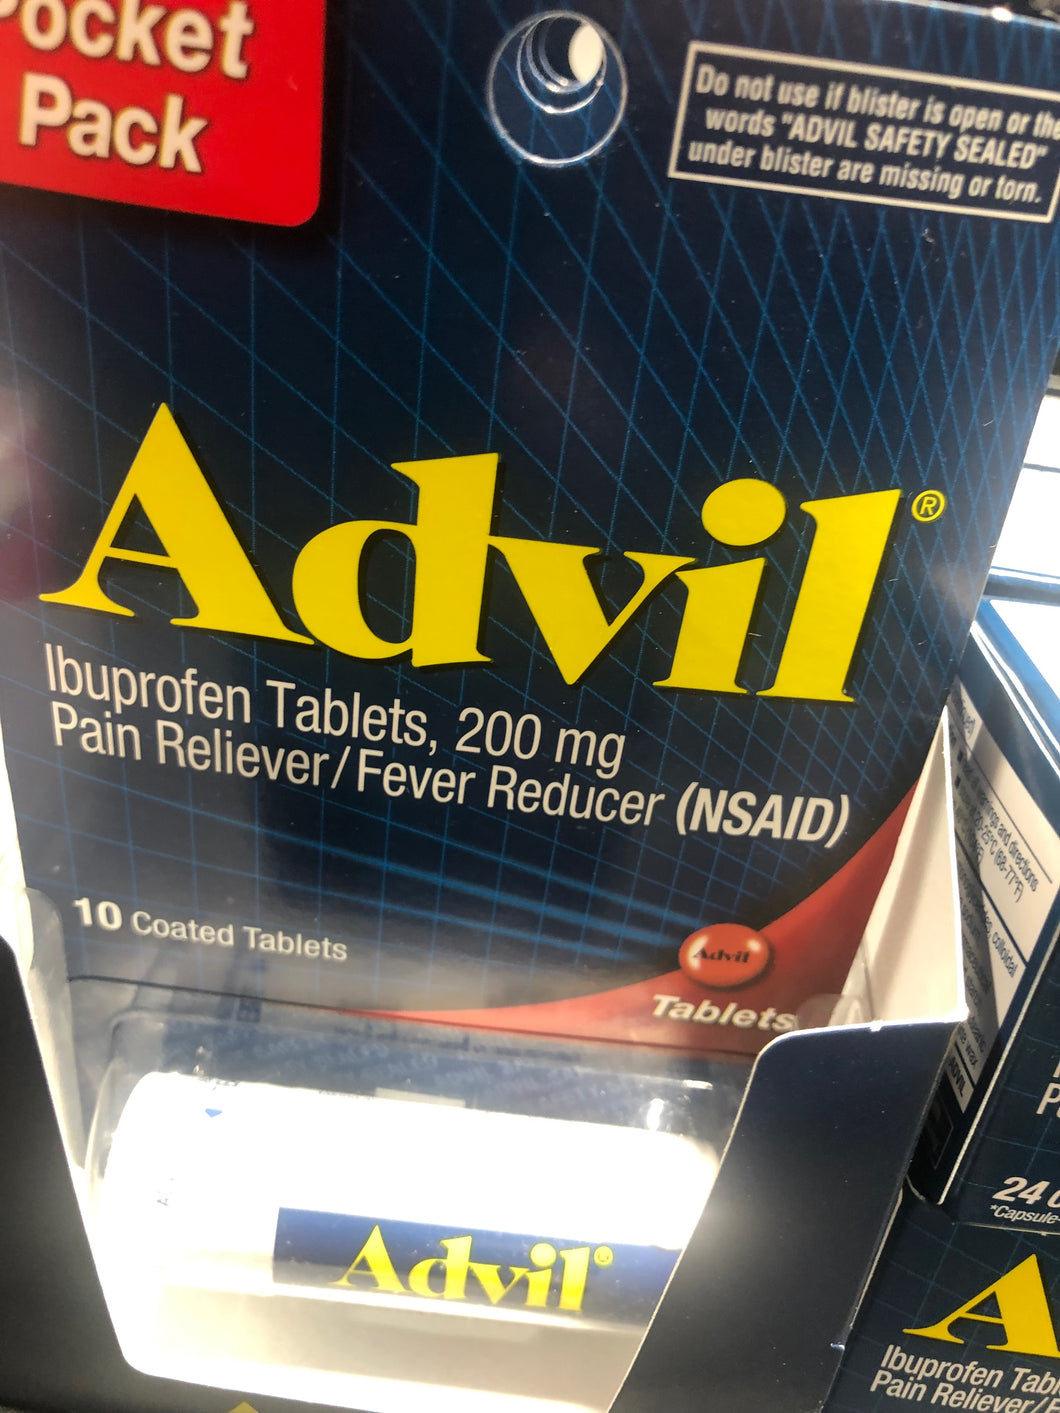 Advil Pocket Pack Tablets 200 mg (10)